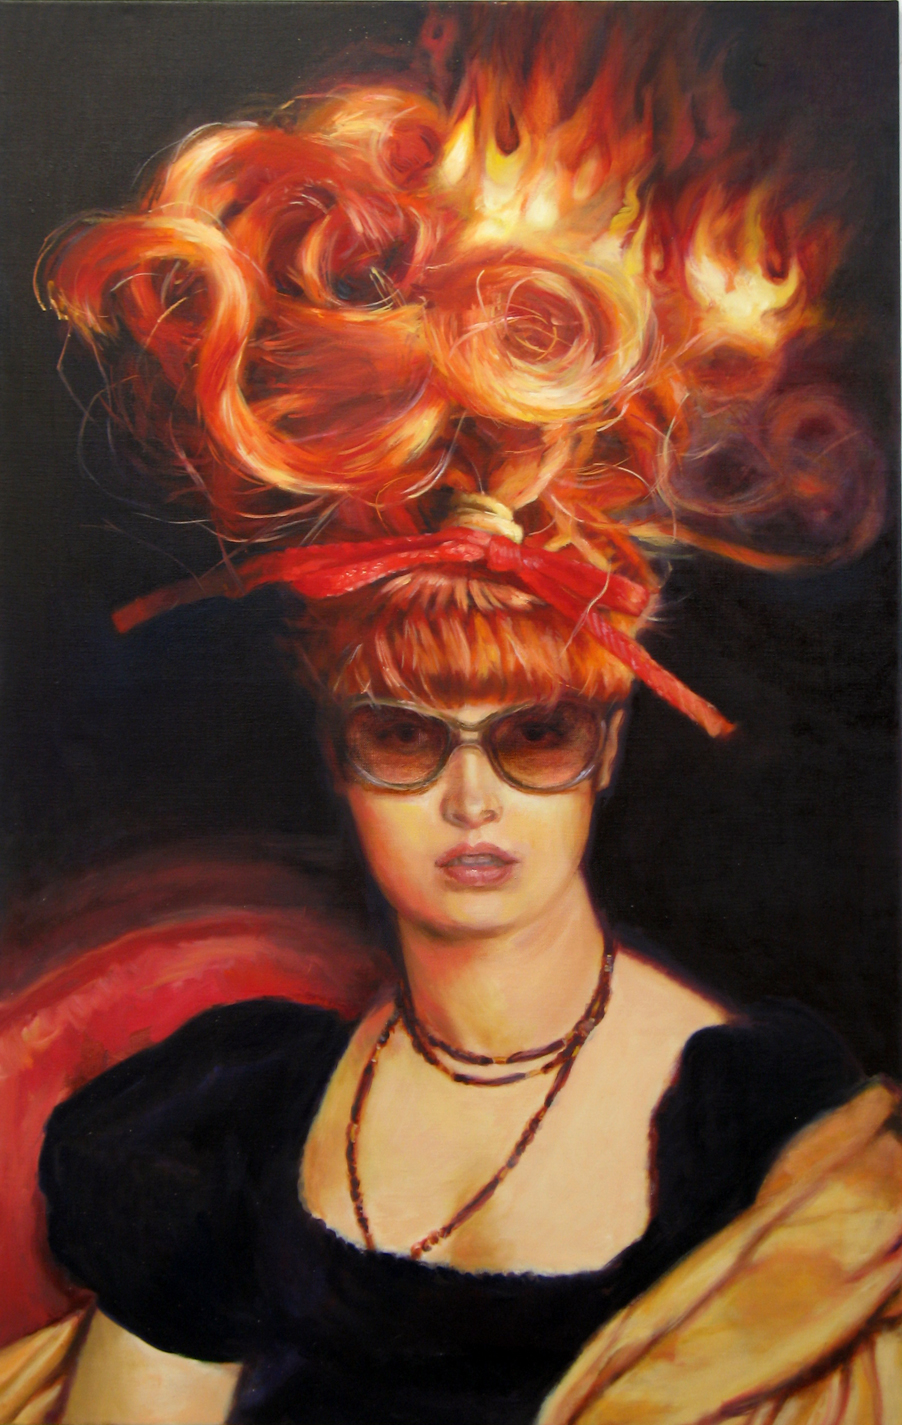 'Madame Topknot plans her day' 152x94cm oil on linen